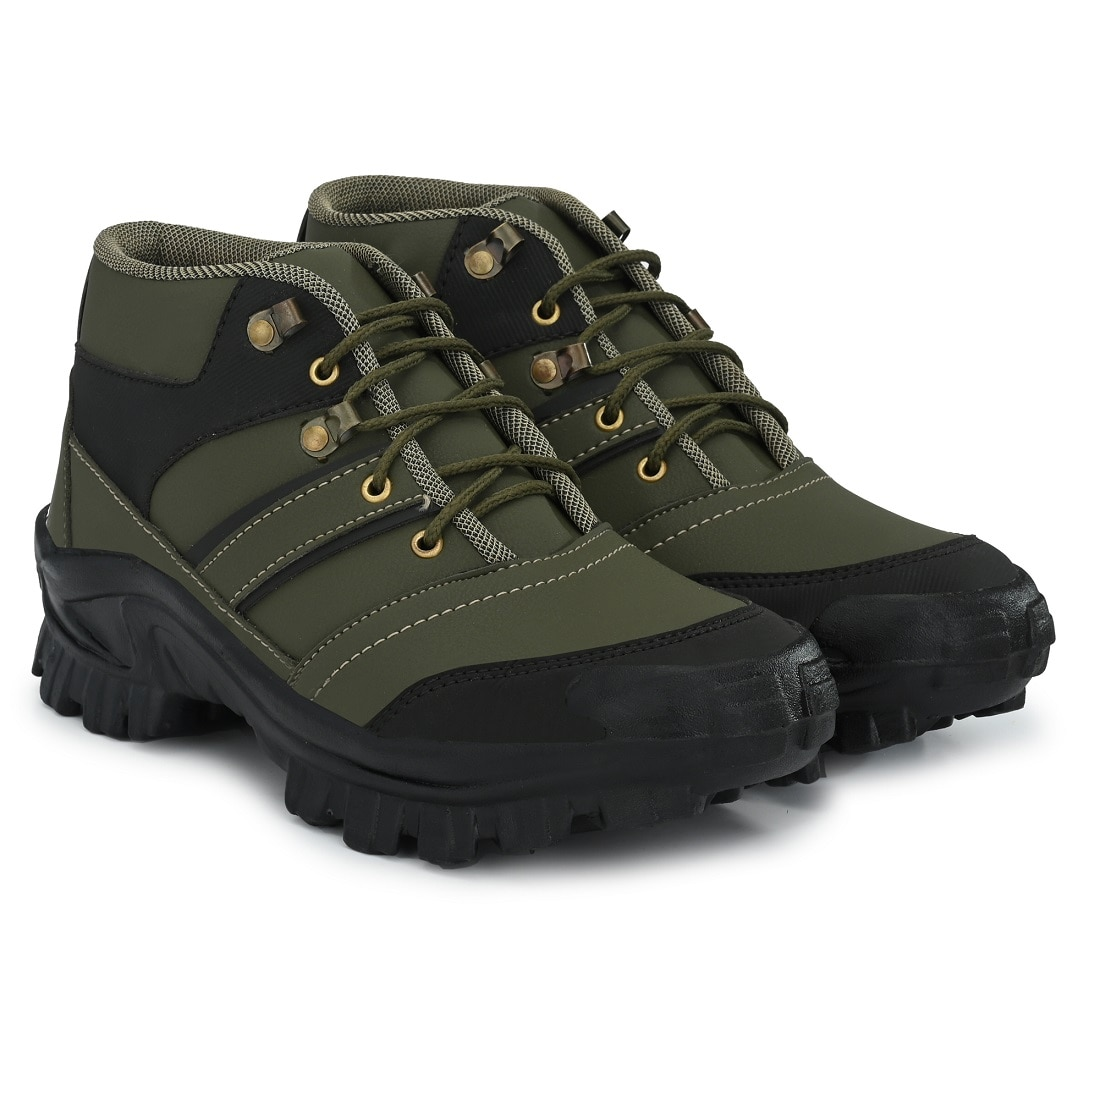 BUCIK OLIVE SYNTHETIC LEATHER CASUAL SHOE BCK091-OLIVE (Olive,6-10,8 PAIR)